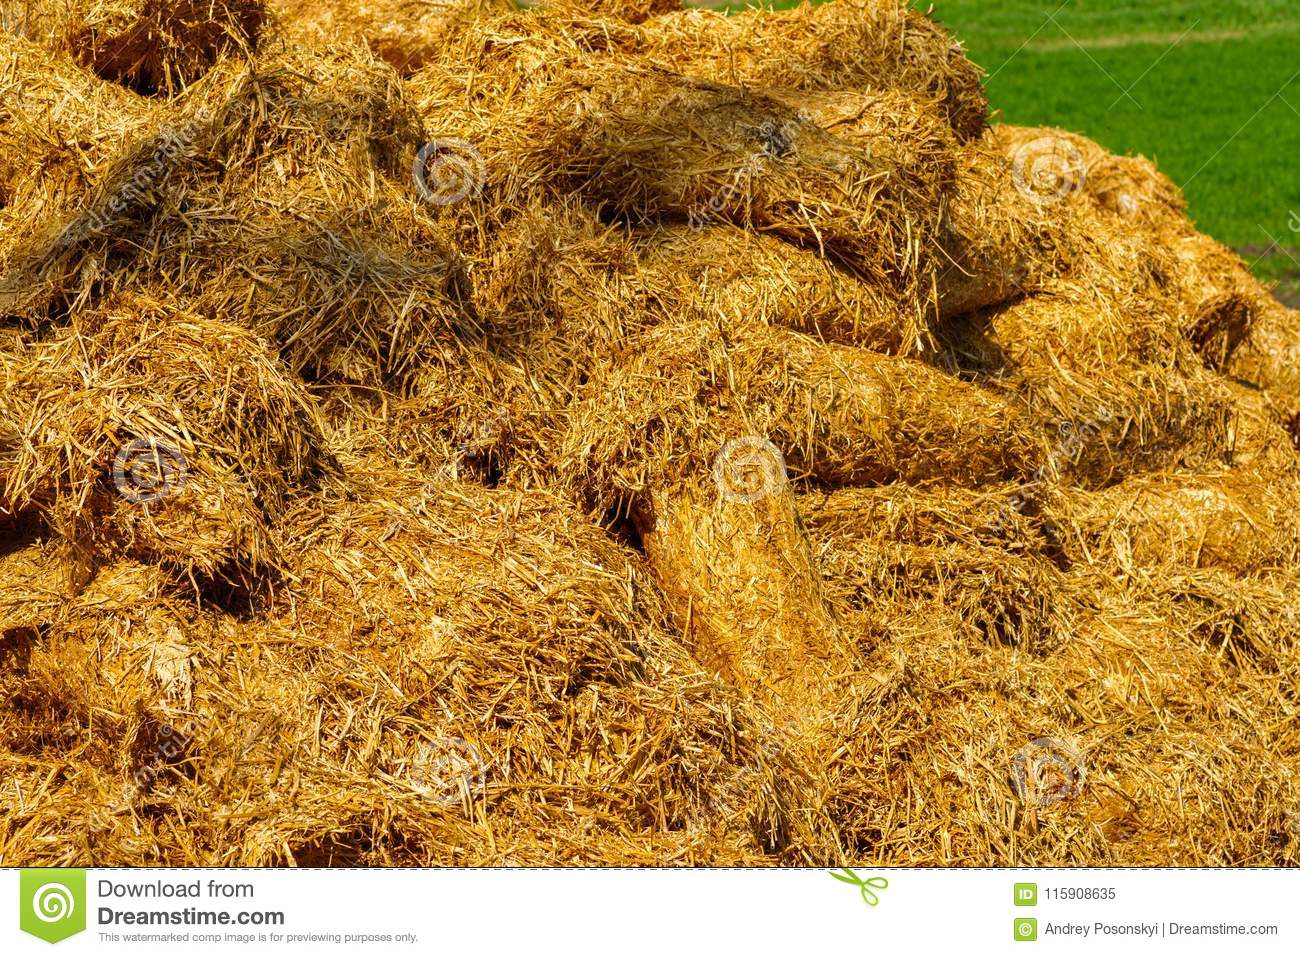 Sheaves of straw in agriculture